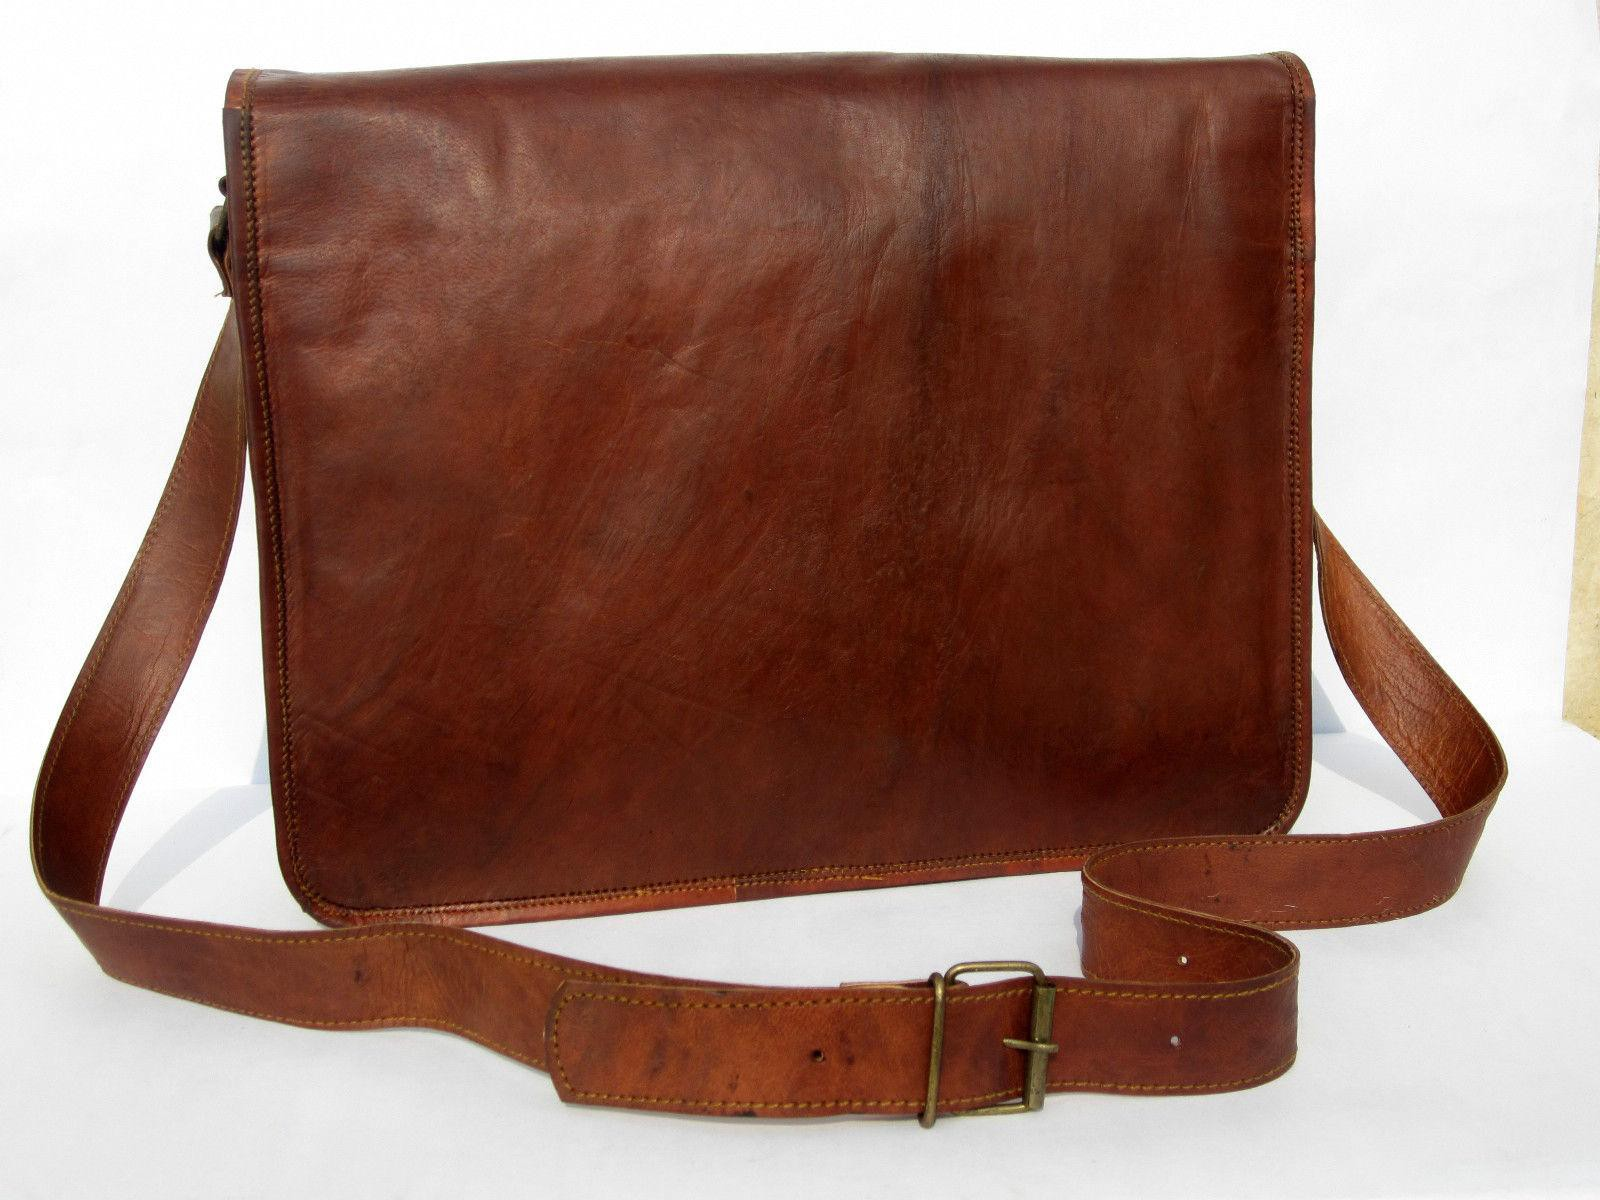 cda9a5639f27 What to Look In A Leather Shoulder Bag For Men – Ana Cruze – Medium